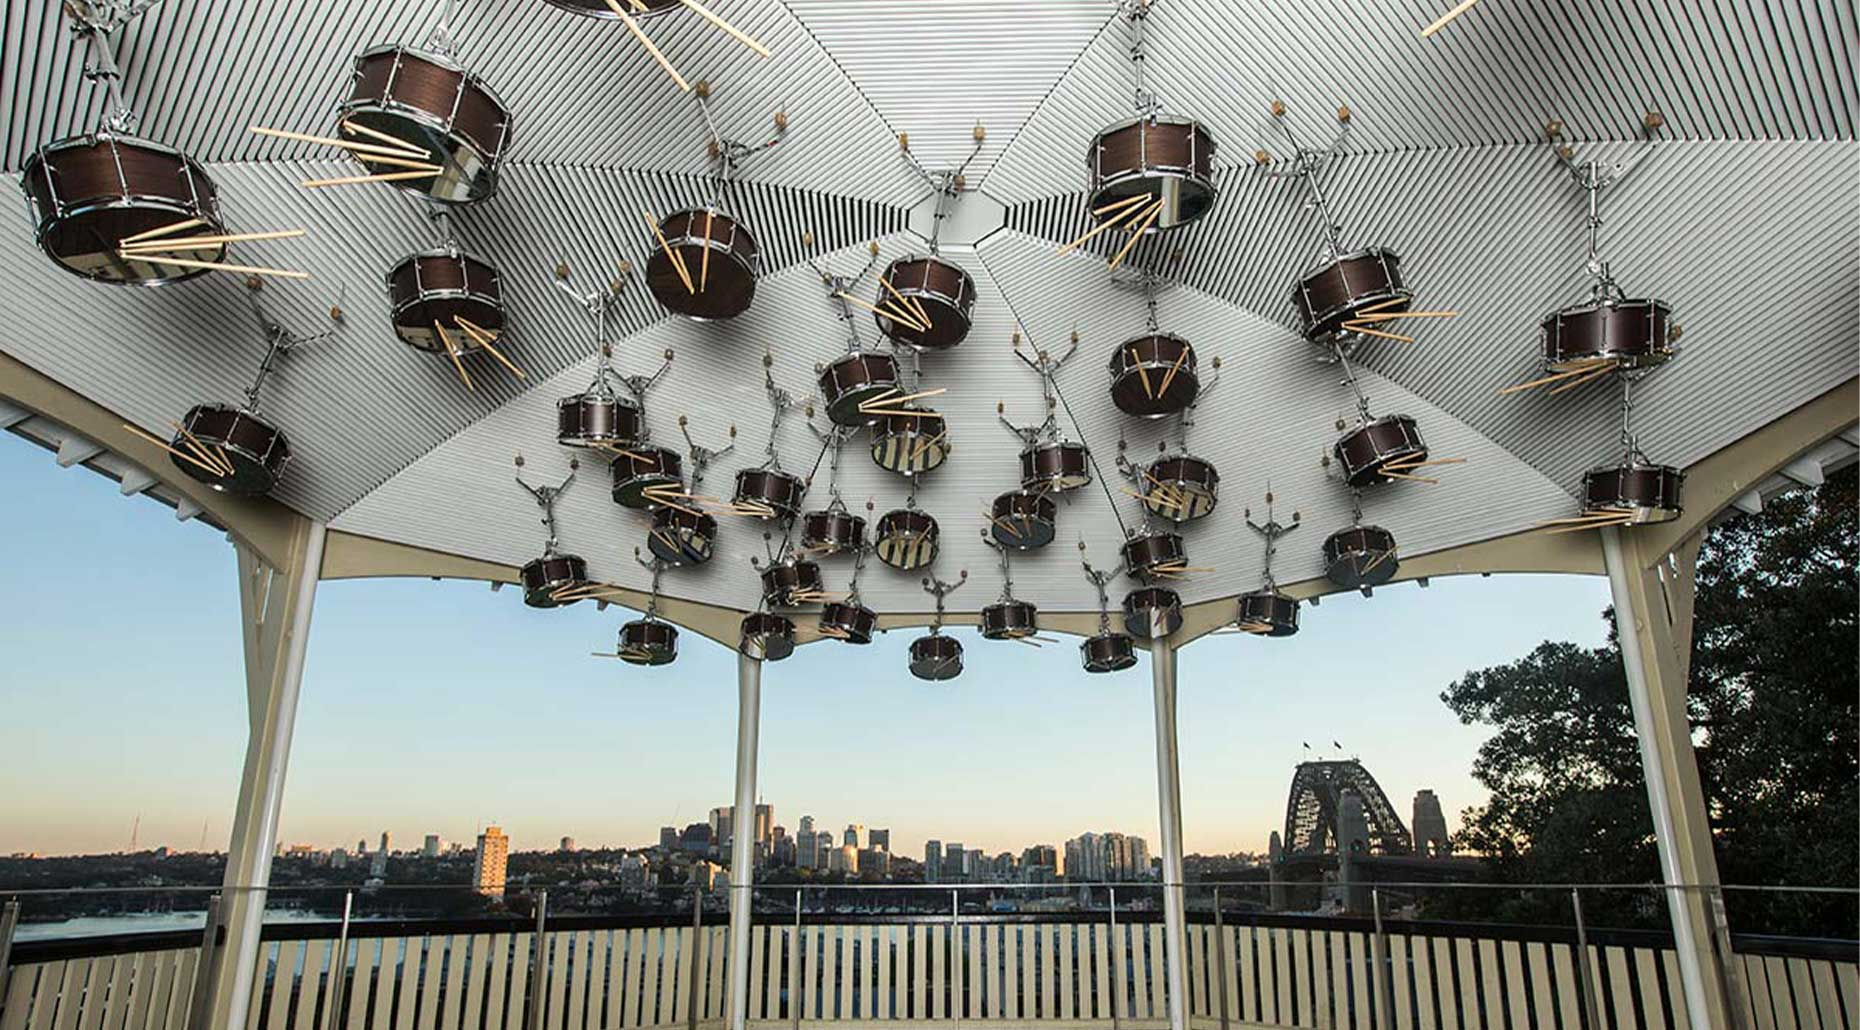 Installation of rums and drum sticks at the ceiling of the gazebo on Observatory Hill by Anri Sala for Kaldor Public Arts. Image supplied by Julian Wessels.